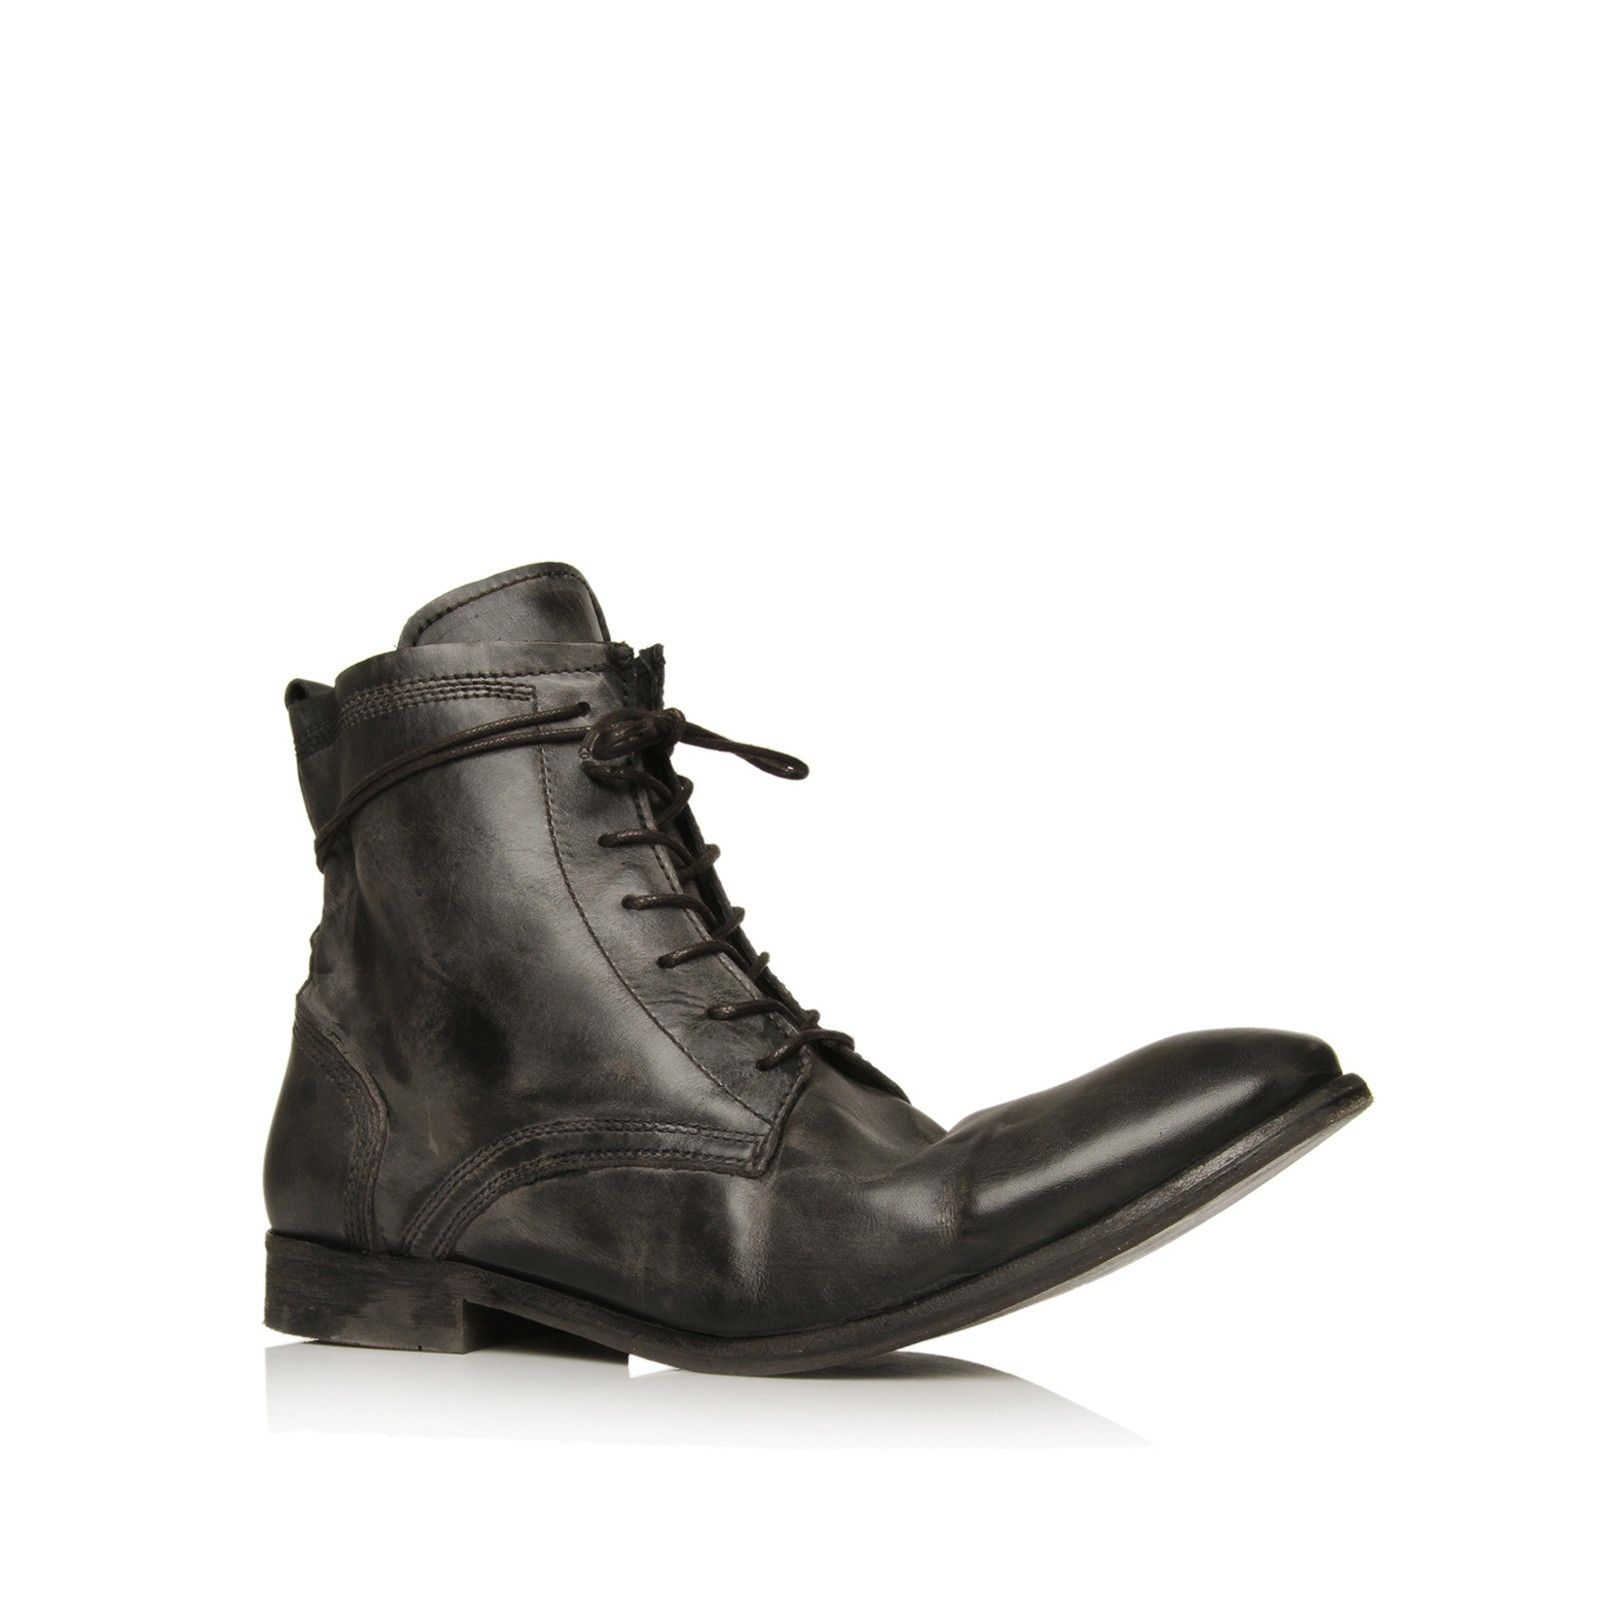 swathmore sfty wrp bt, black shoe by h by hudson -